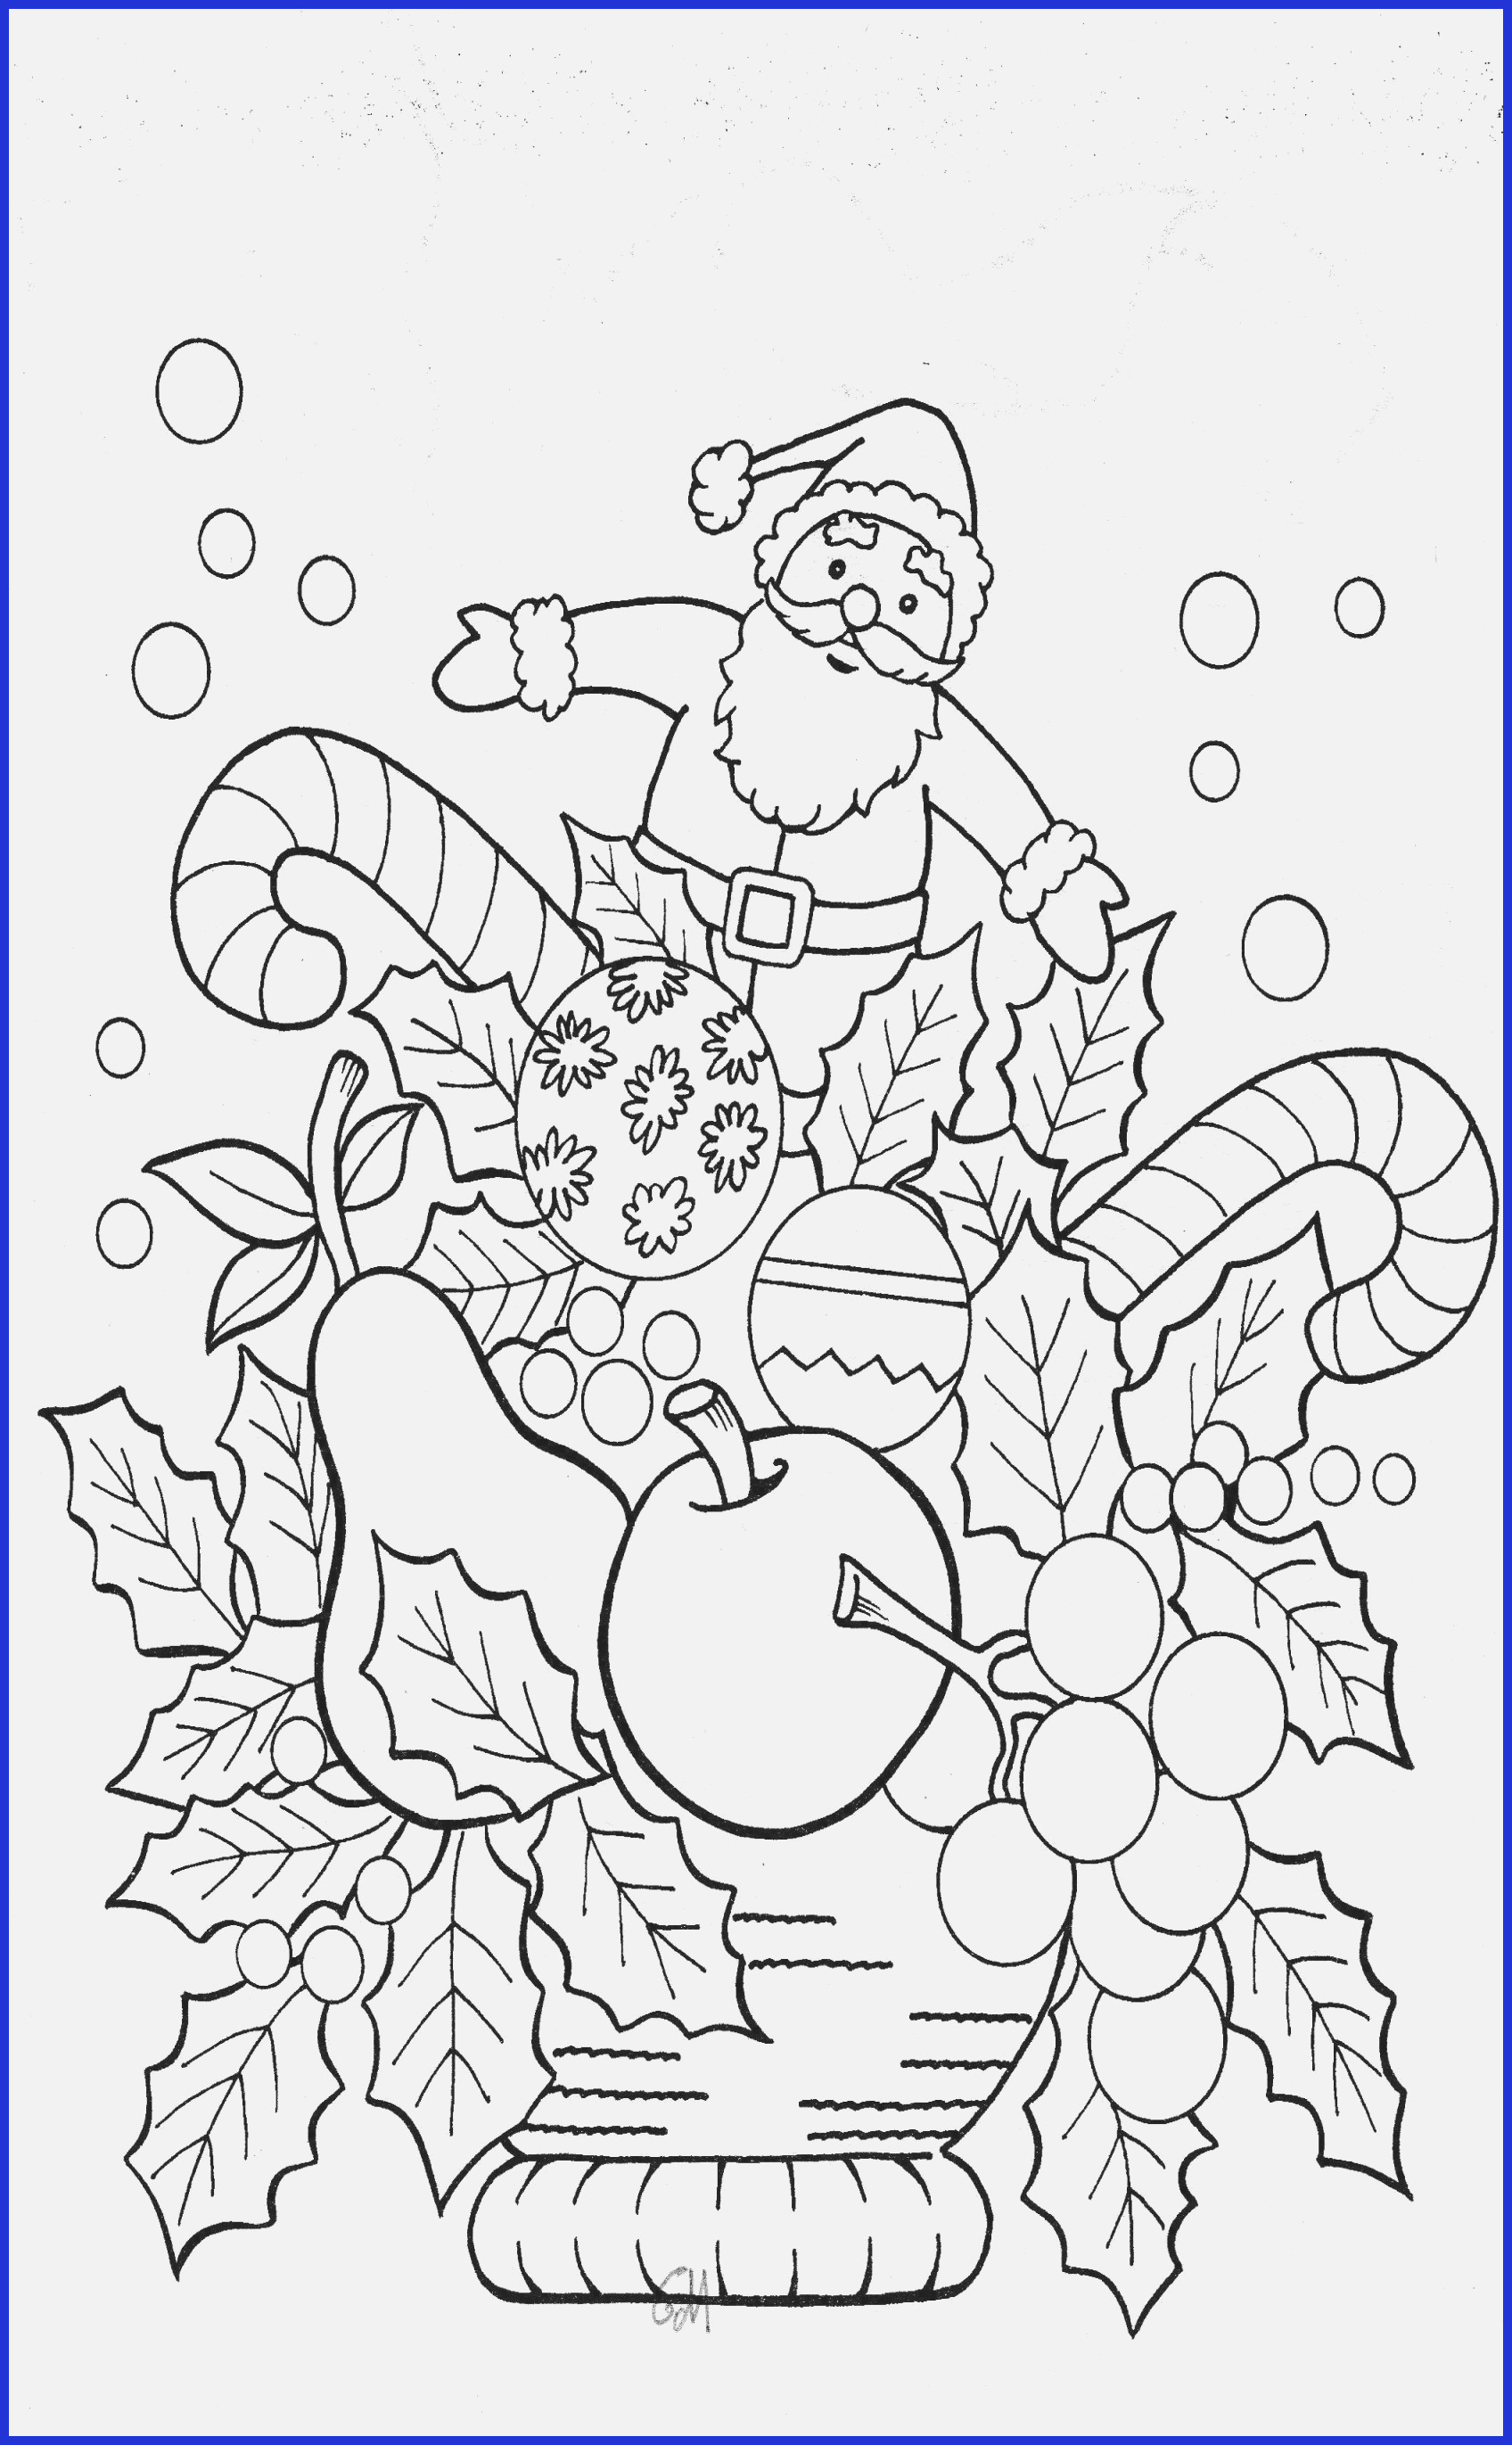 Coloring Pages For 3 Year Olds Coloring Pages For 10 Year Olds Beautiful 139 Best Christmas